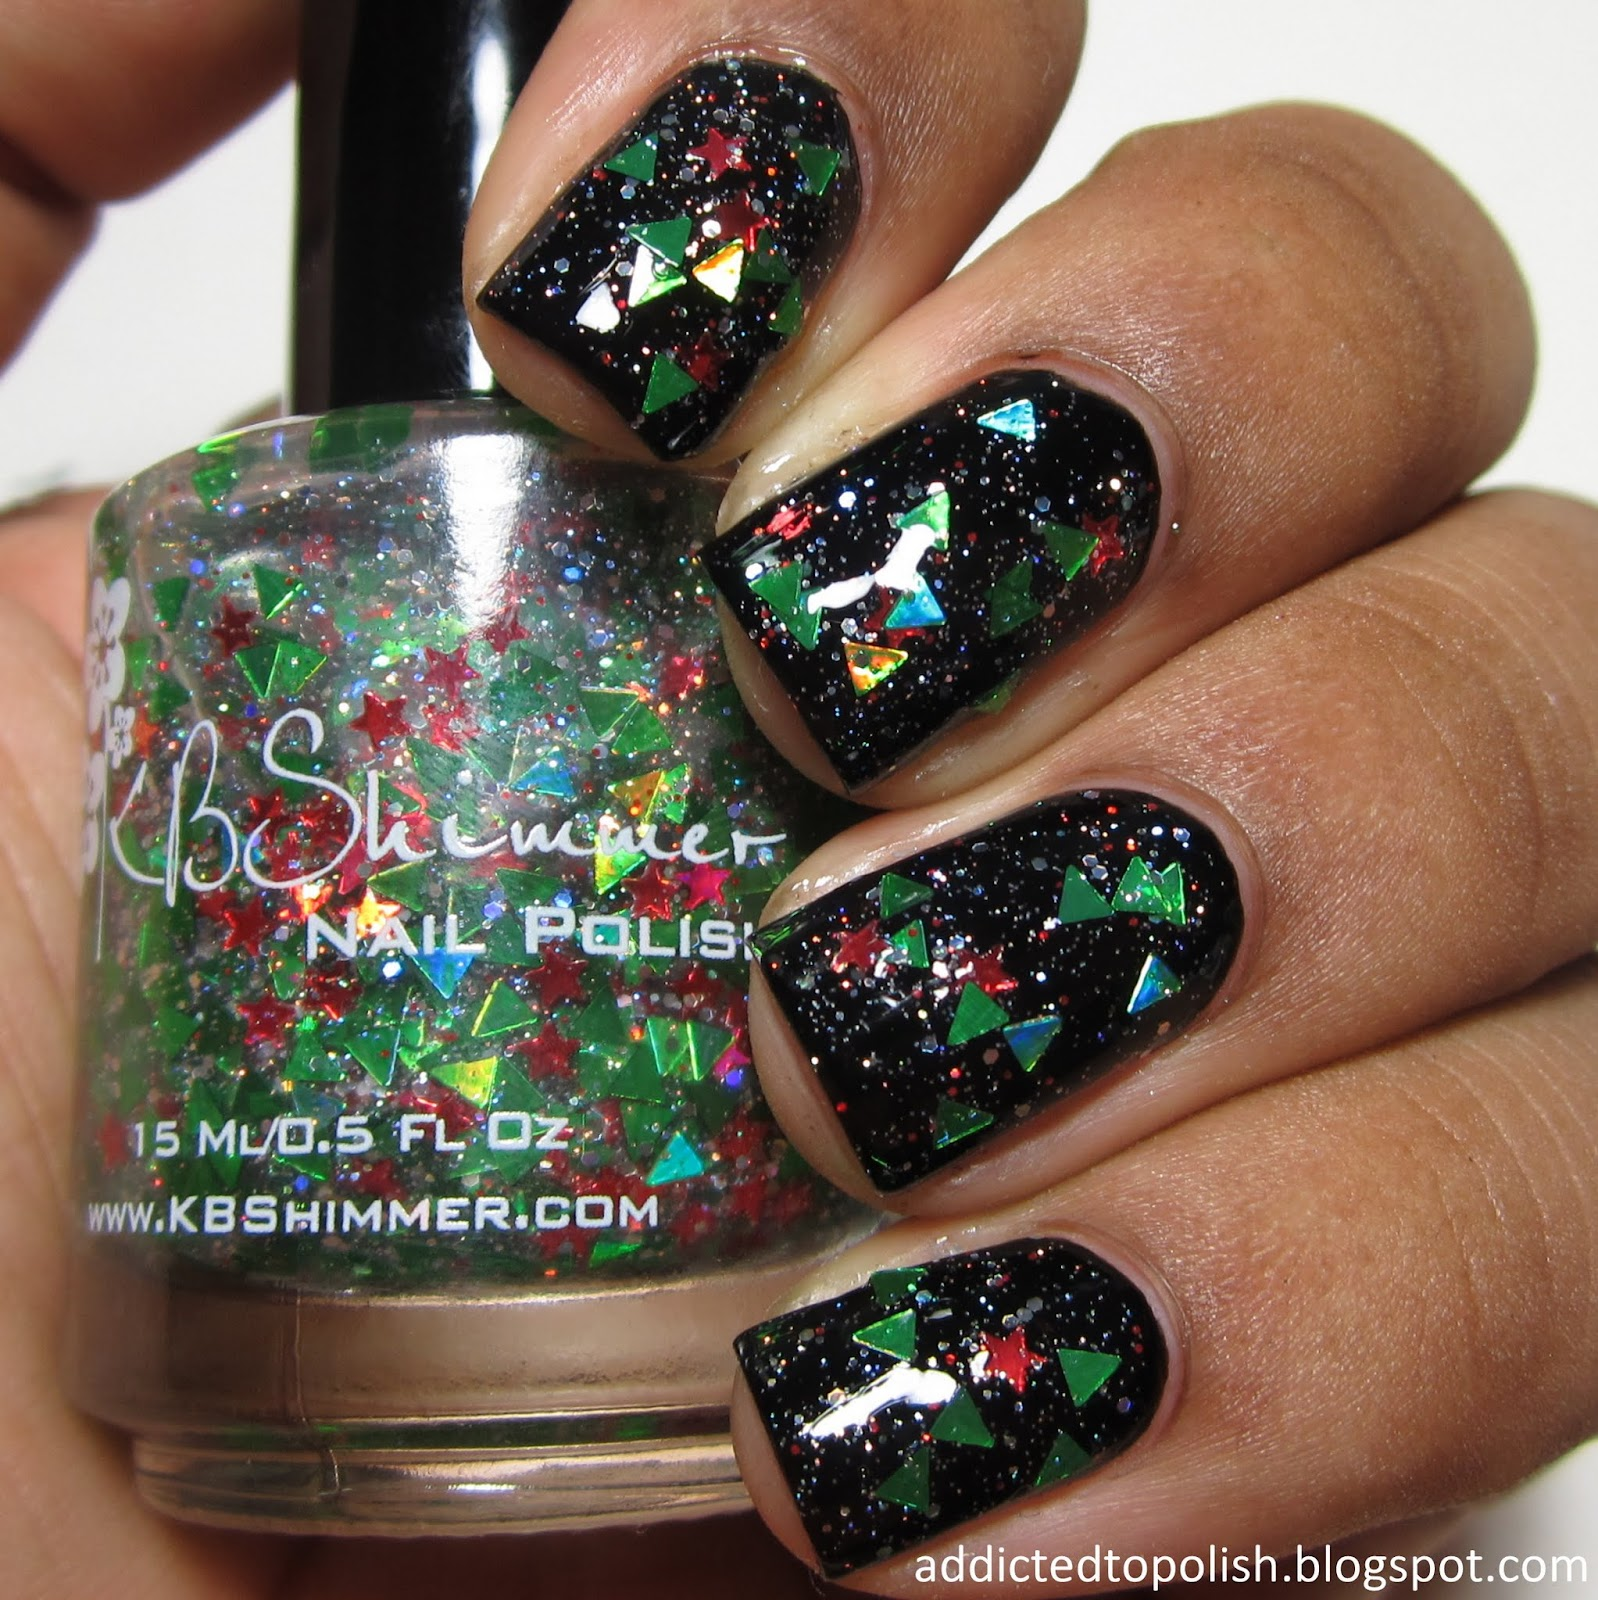 KBShimmer-Pining-for-Yule-over-black-winter-2014